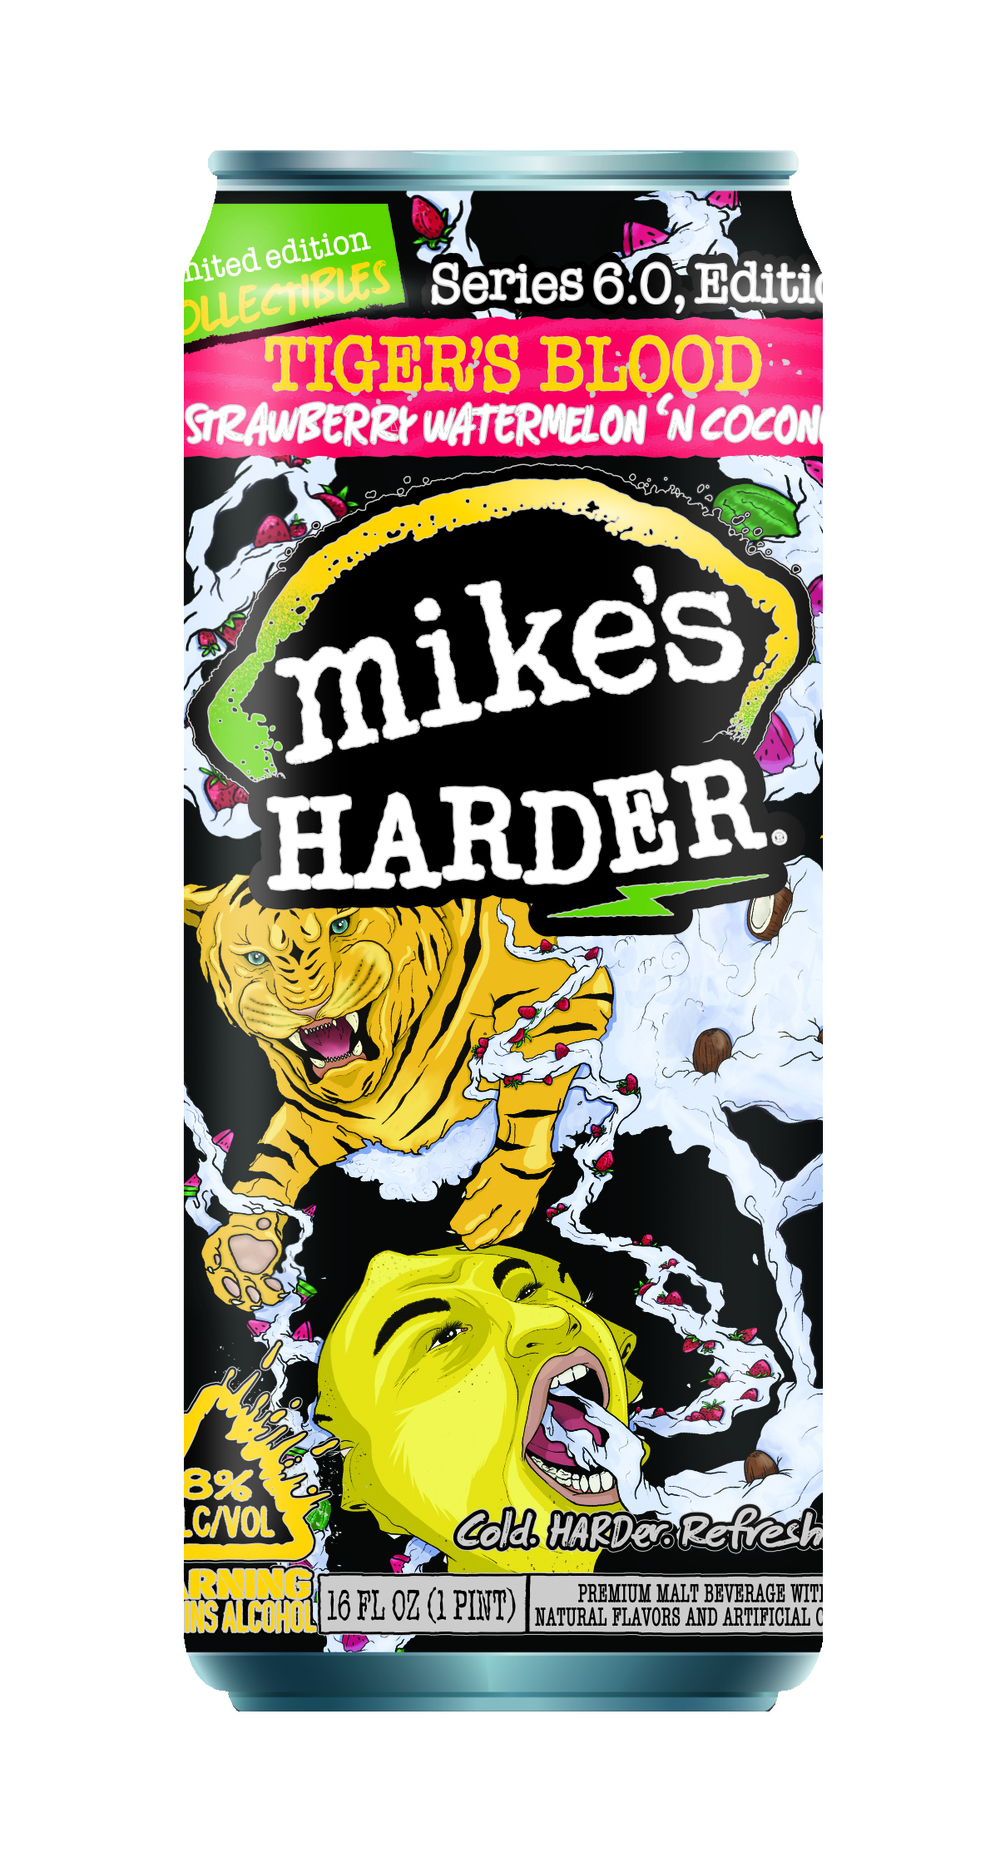 I competed in a Can Design Contest for Mikes Hard Lemonade: Tigers Blood I ended up winning one of the 3 prizes and will have this can printed and sold in stores the summer of 2016 The click through link takes you to my featured page on Zooppa.com